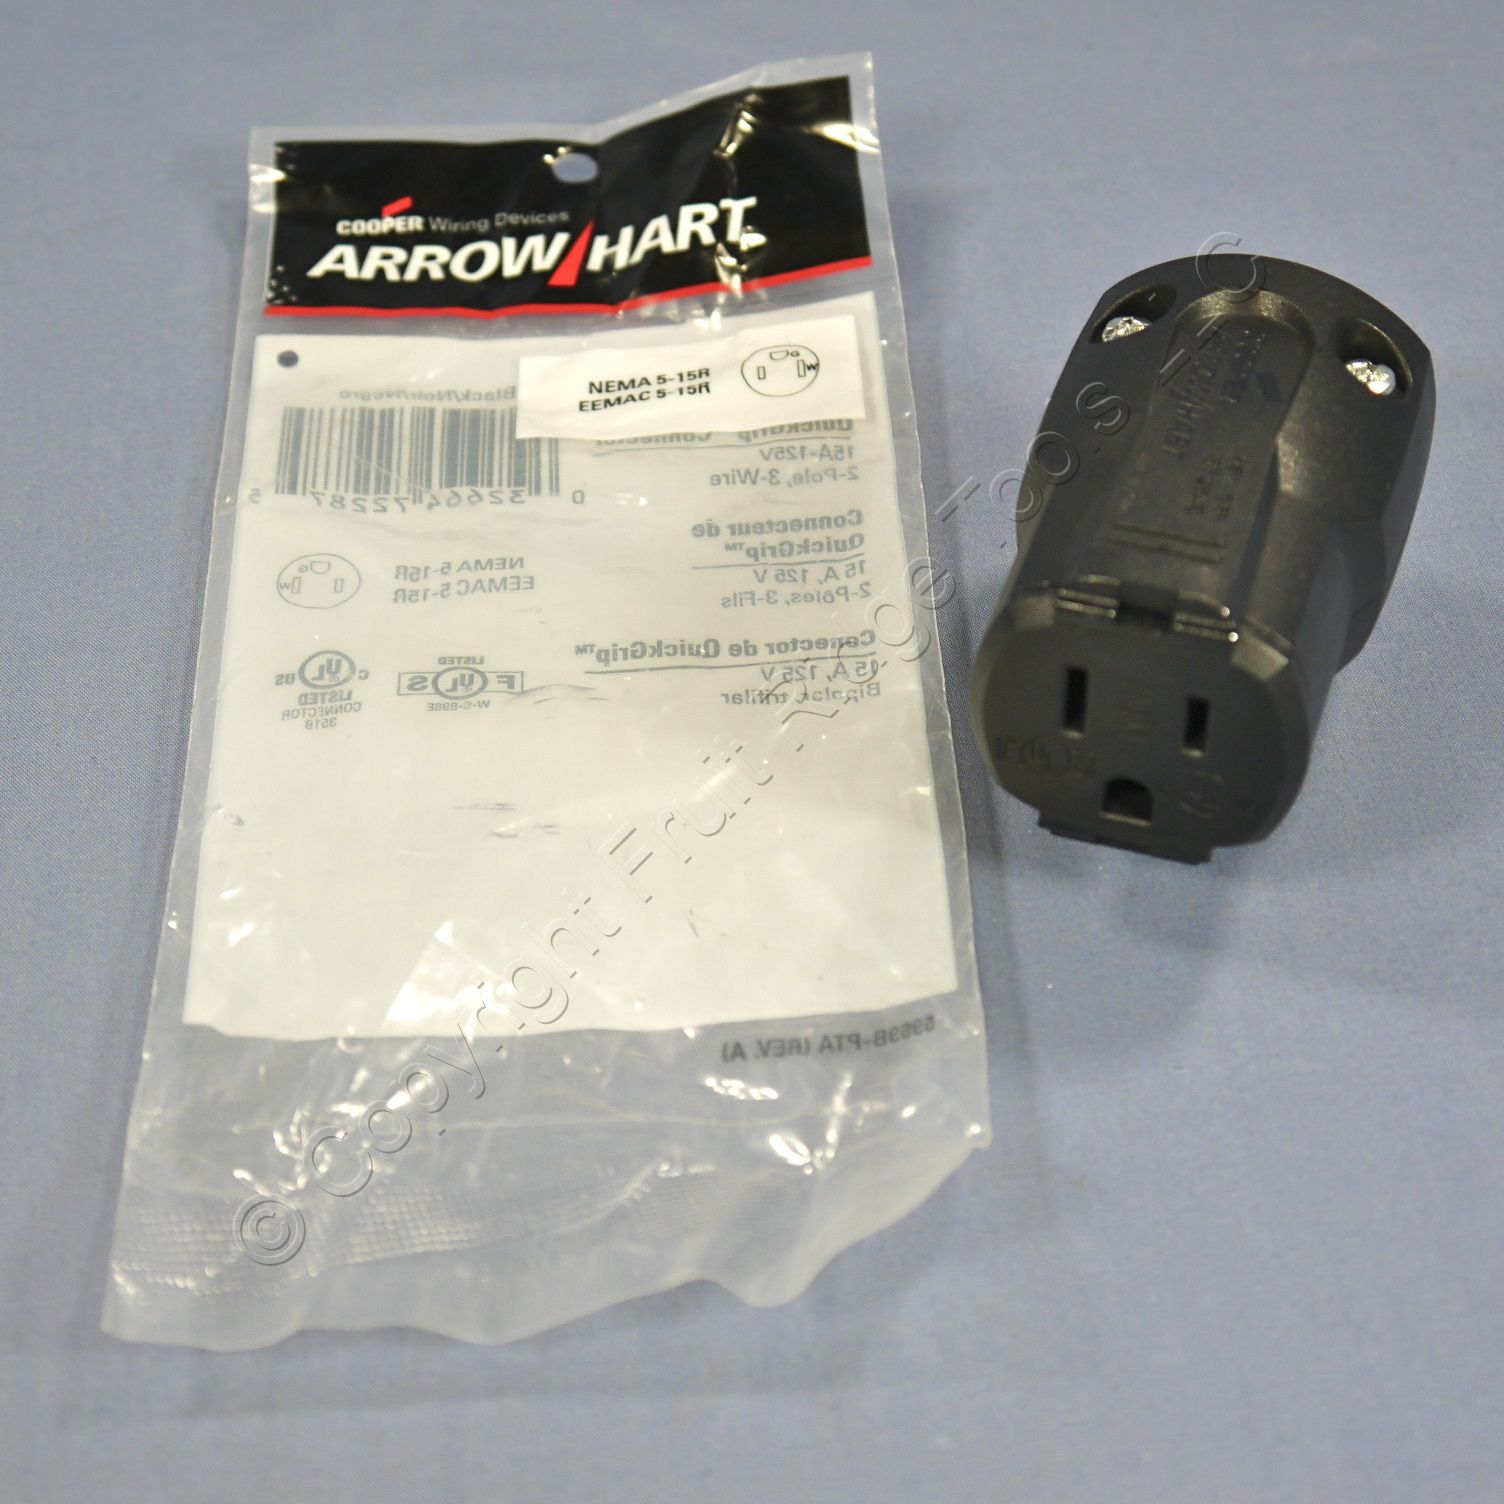 Cooper Arrow Hart Black QuickGrip Straight Blade Plug 2P3W NEMA 5-15 15A 125V AH5969BK